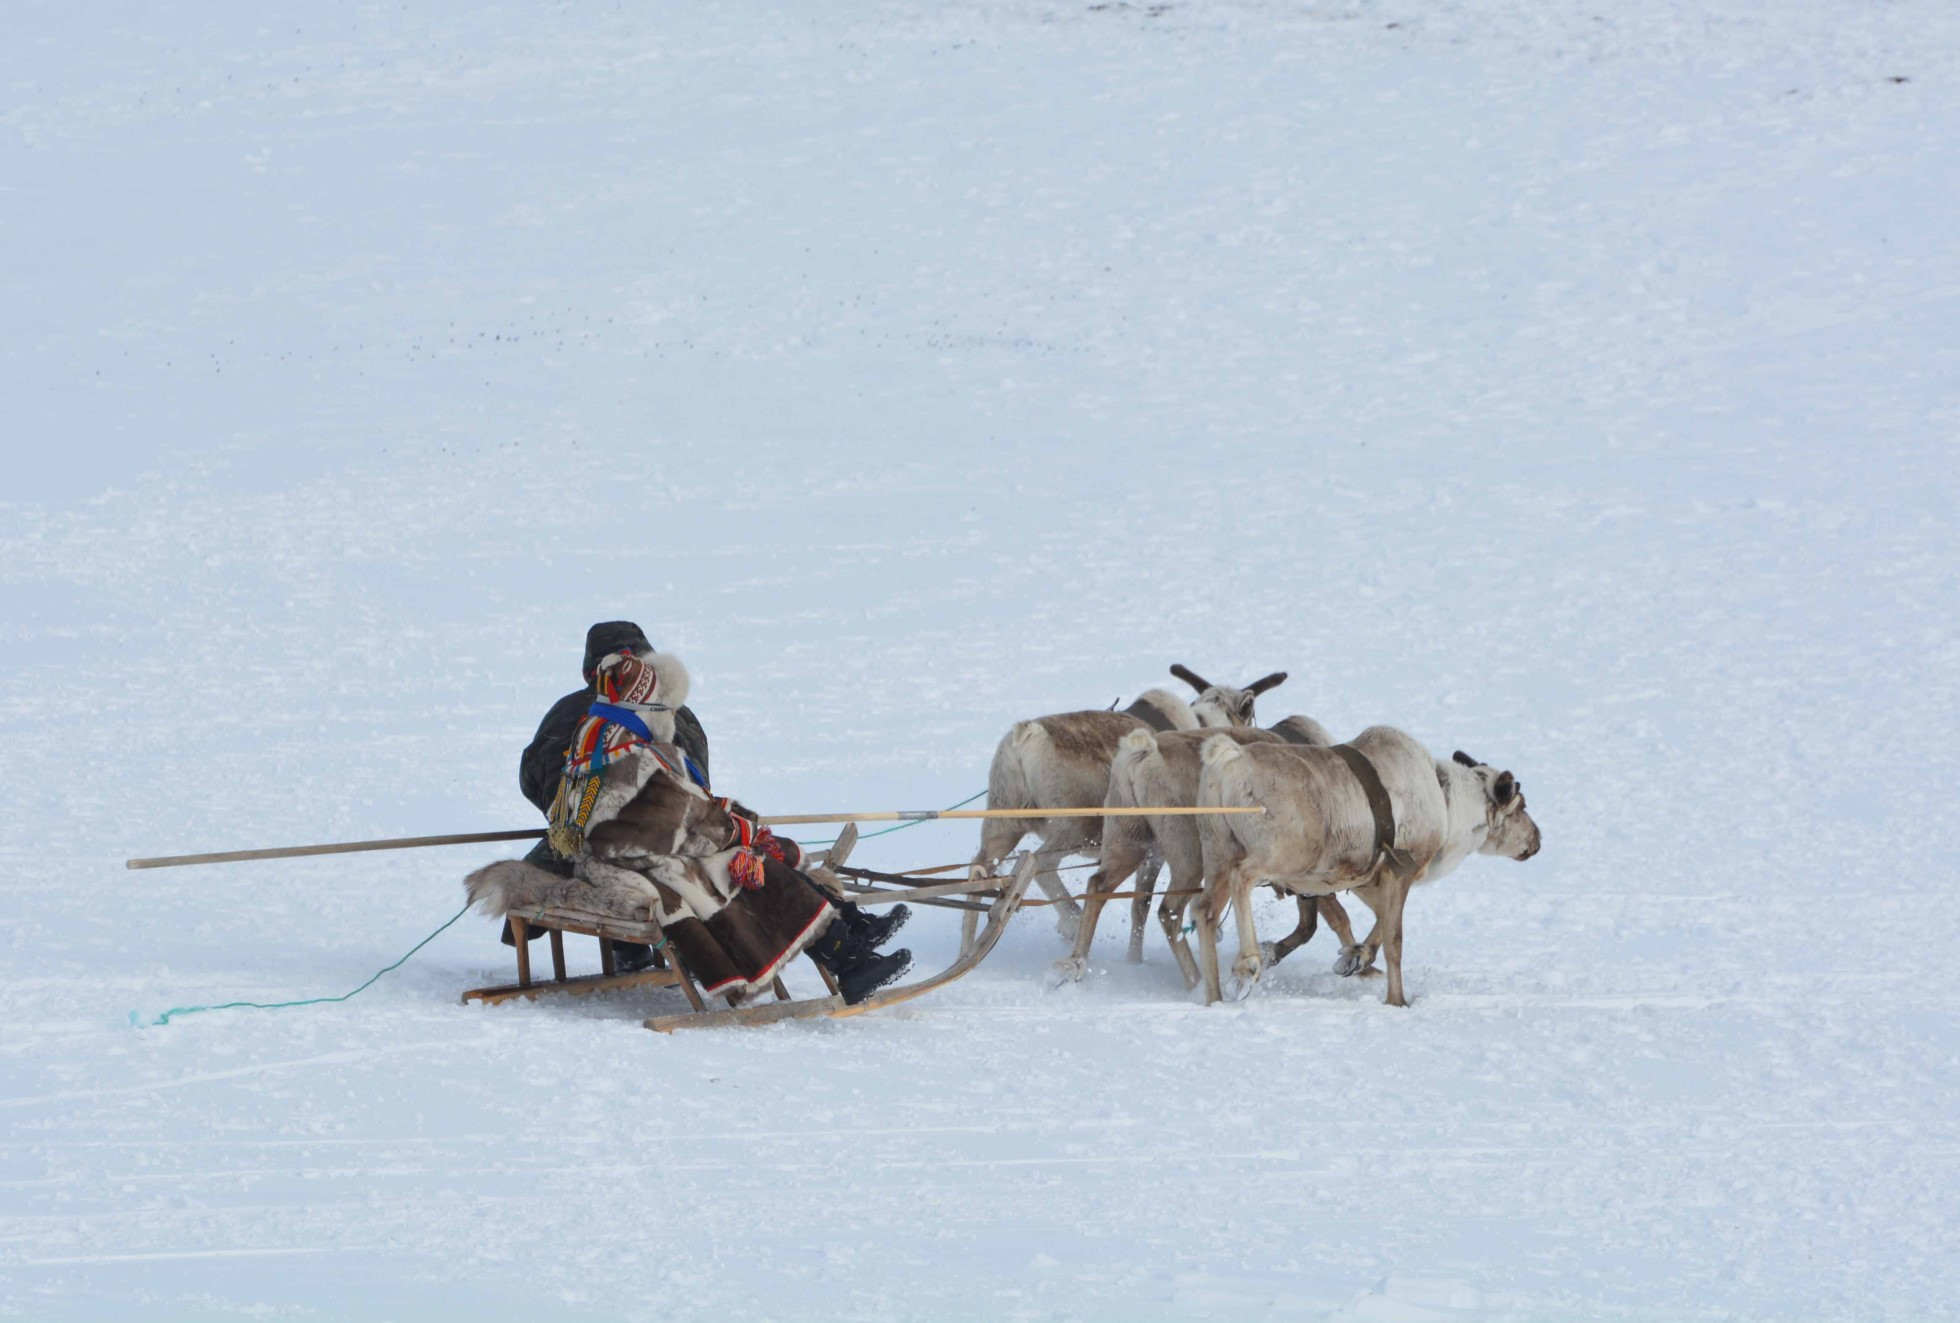 A photograph of two people sit on a sled being pulled by three reindeer across the snow.  The person closest to the camera partially obscures the other person on the sled. They wear a long fur parka.